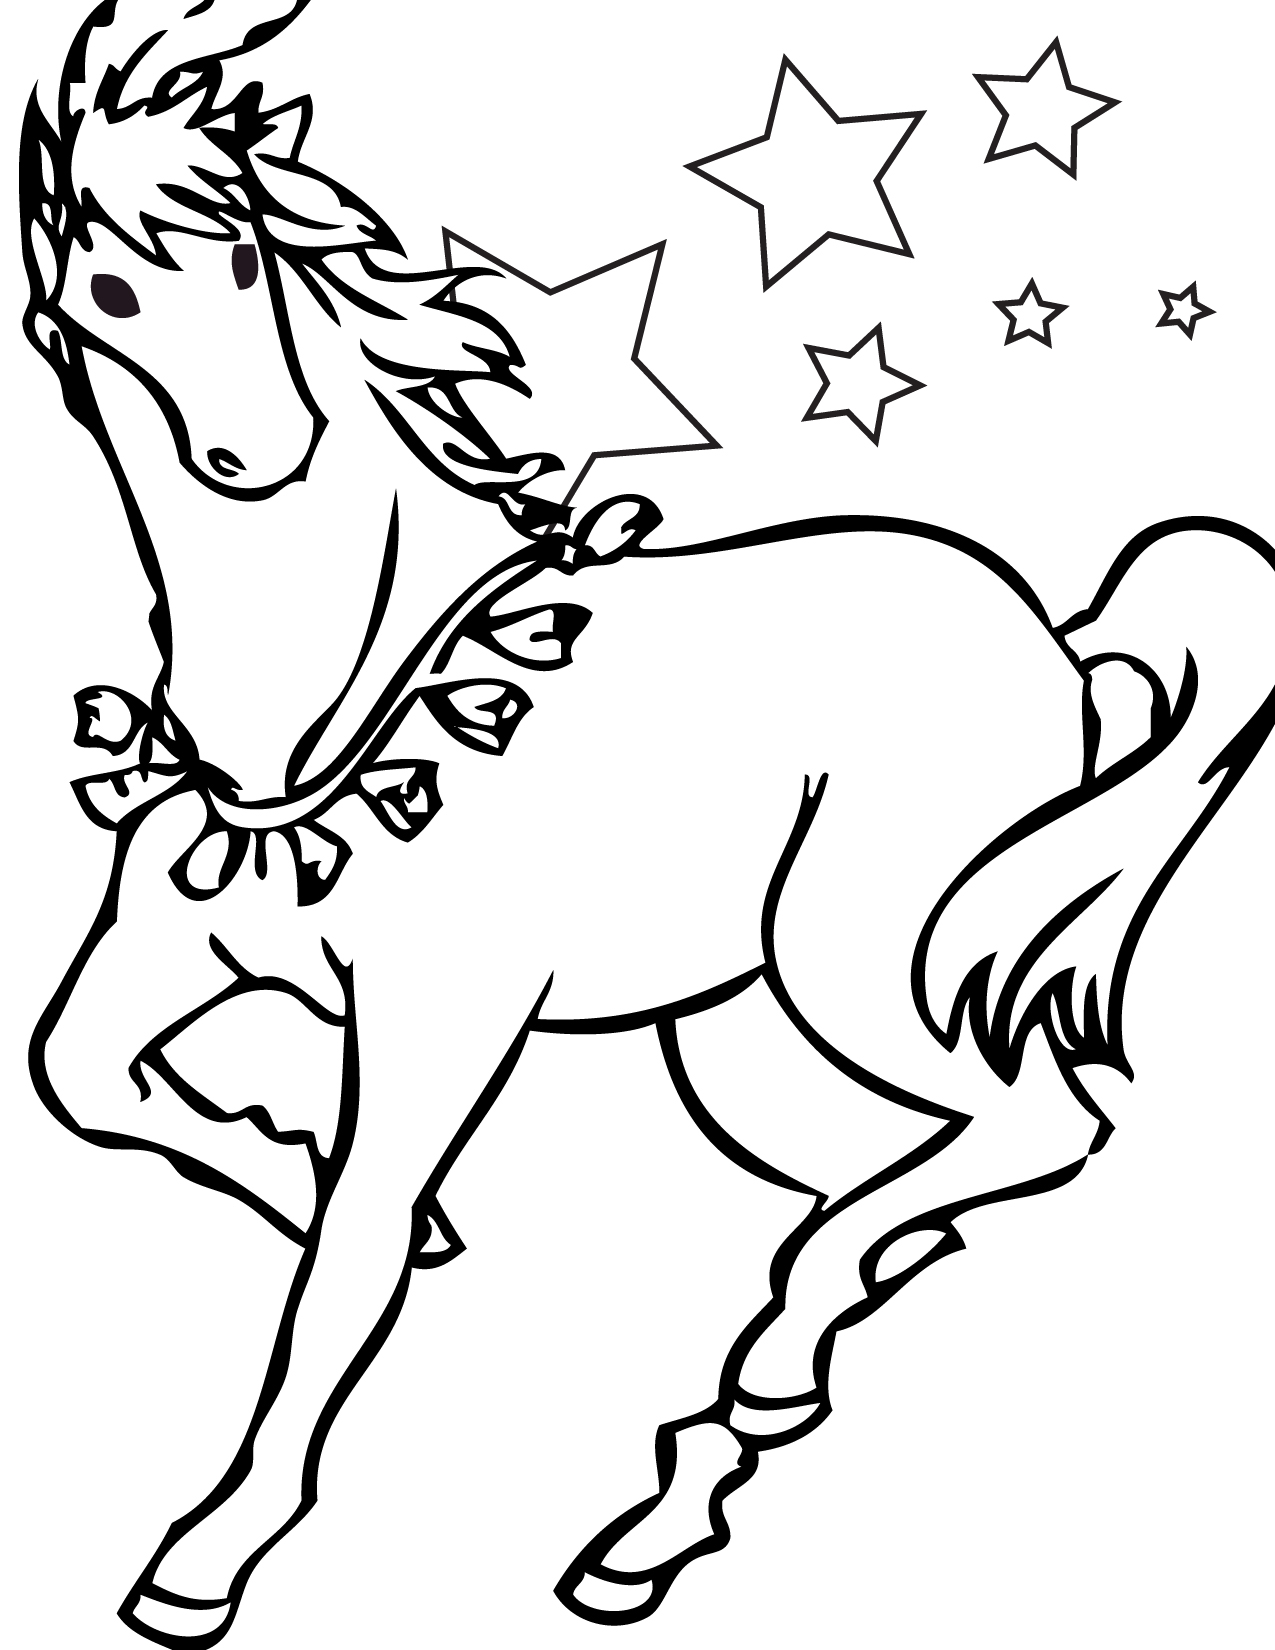 coloring page horse horse coloring pages preschool and kindergarten horse coloring page